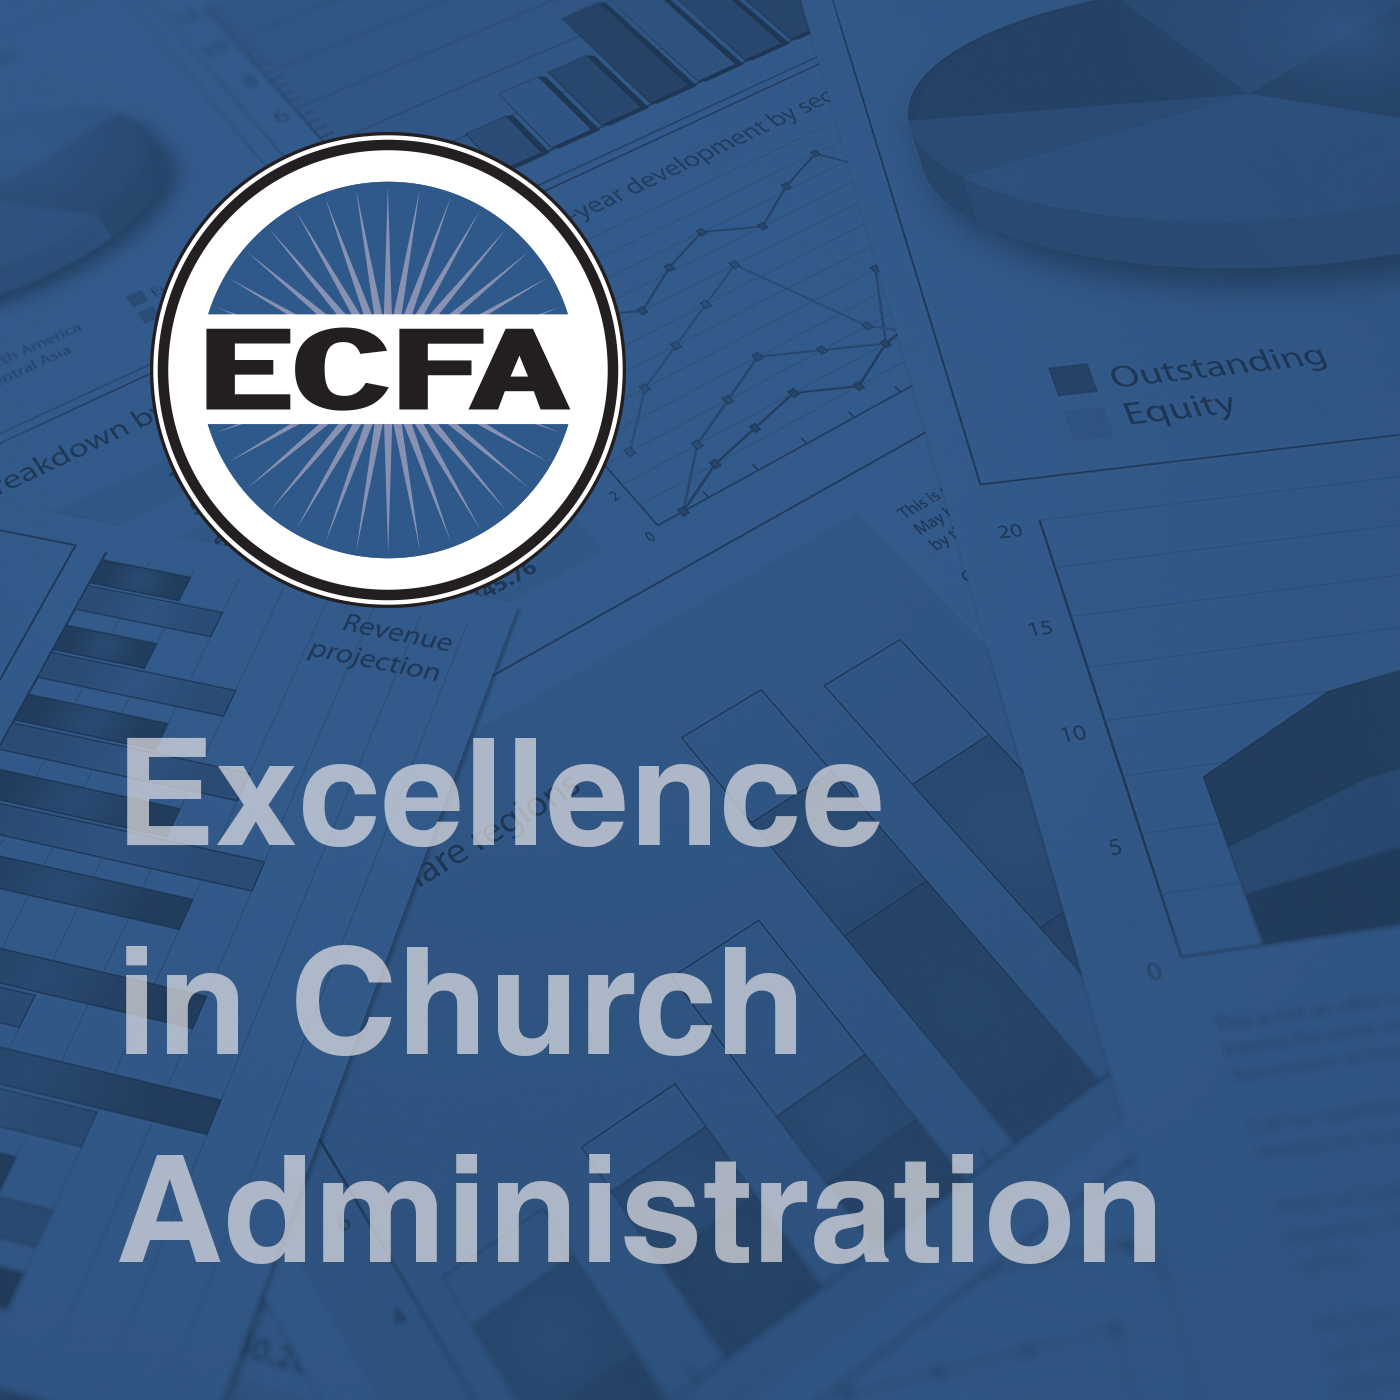 Excellence in Church Administration